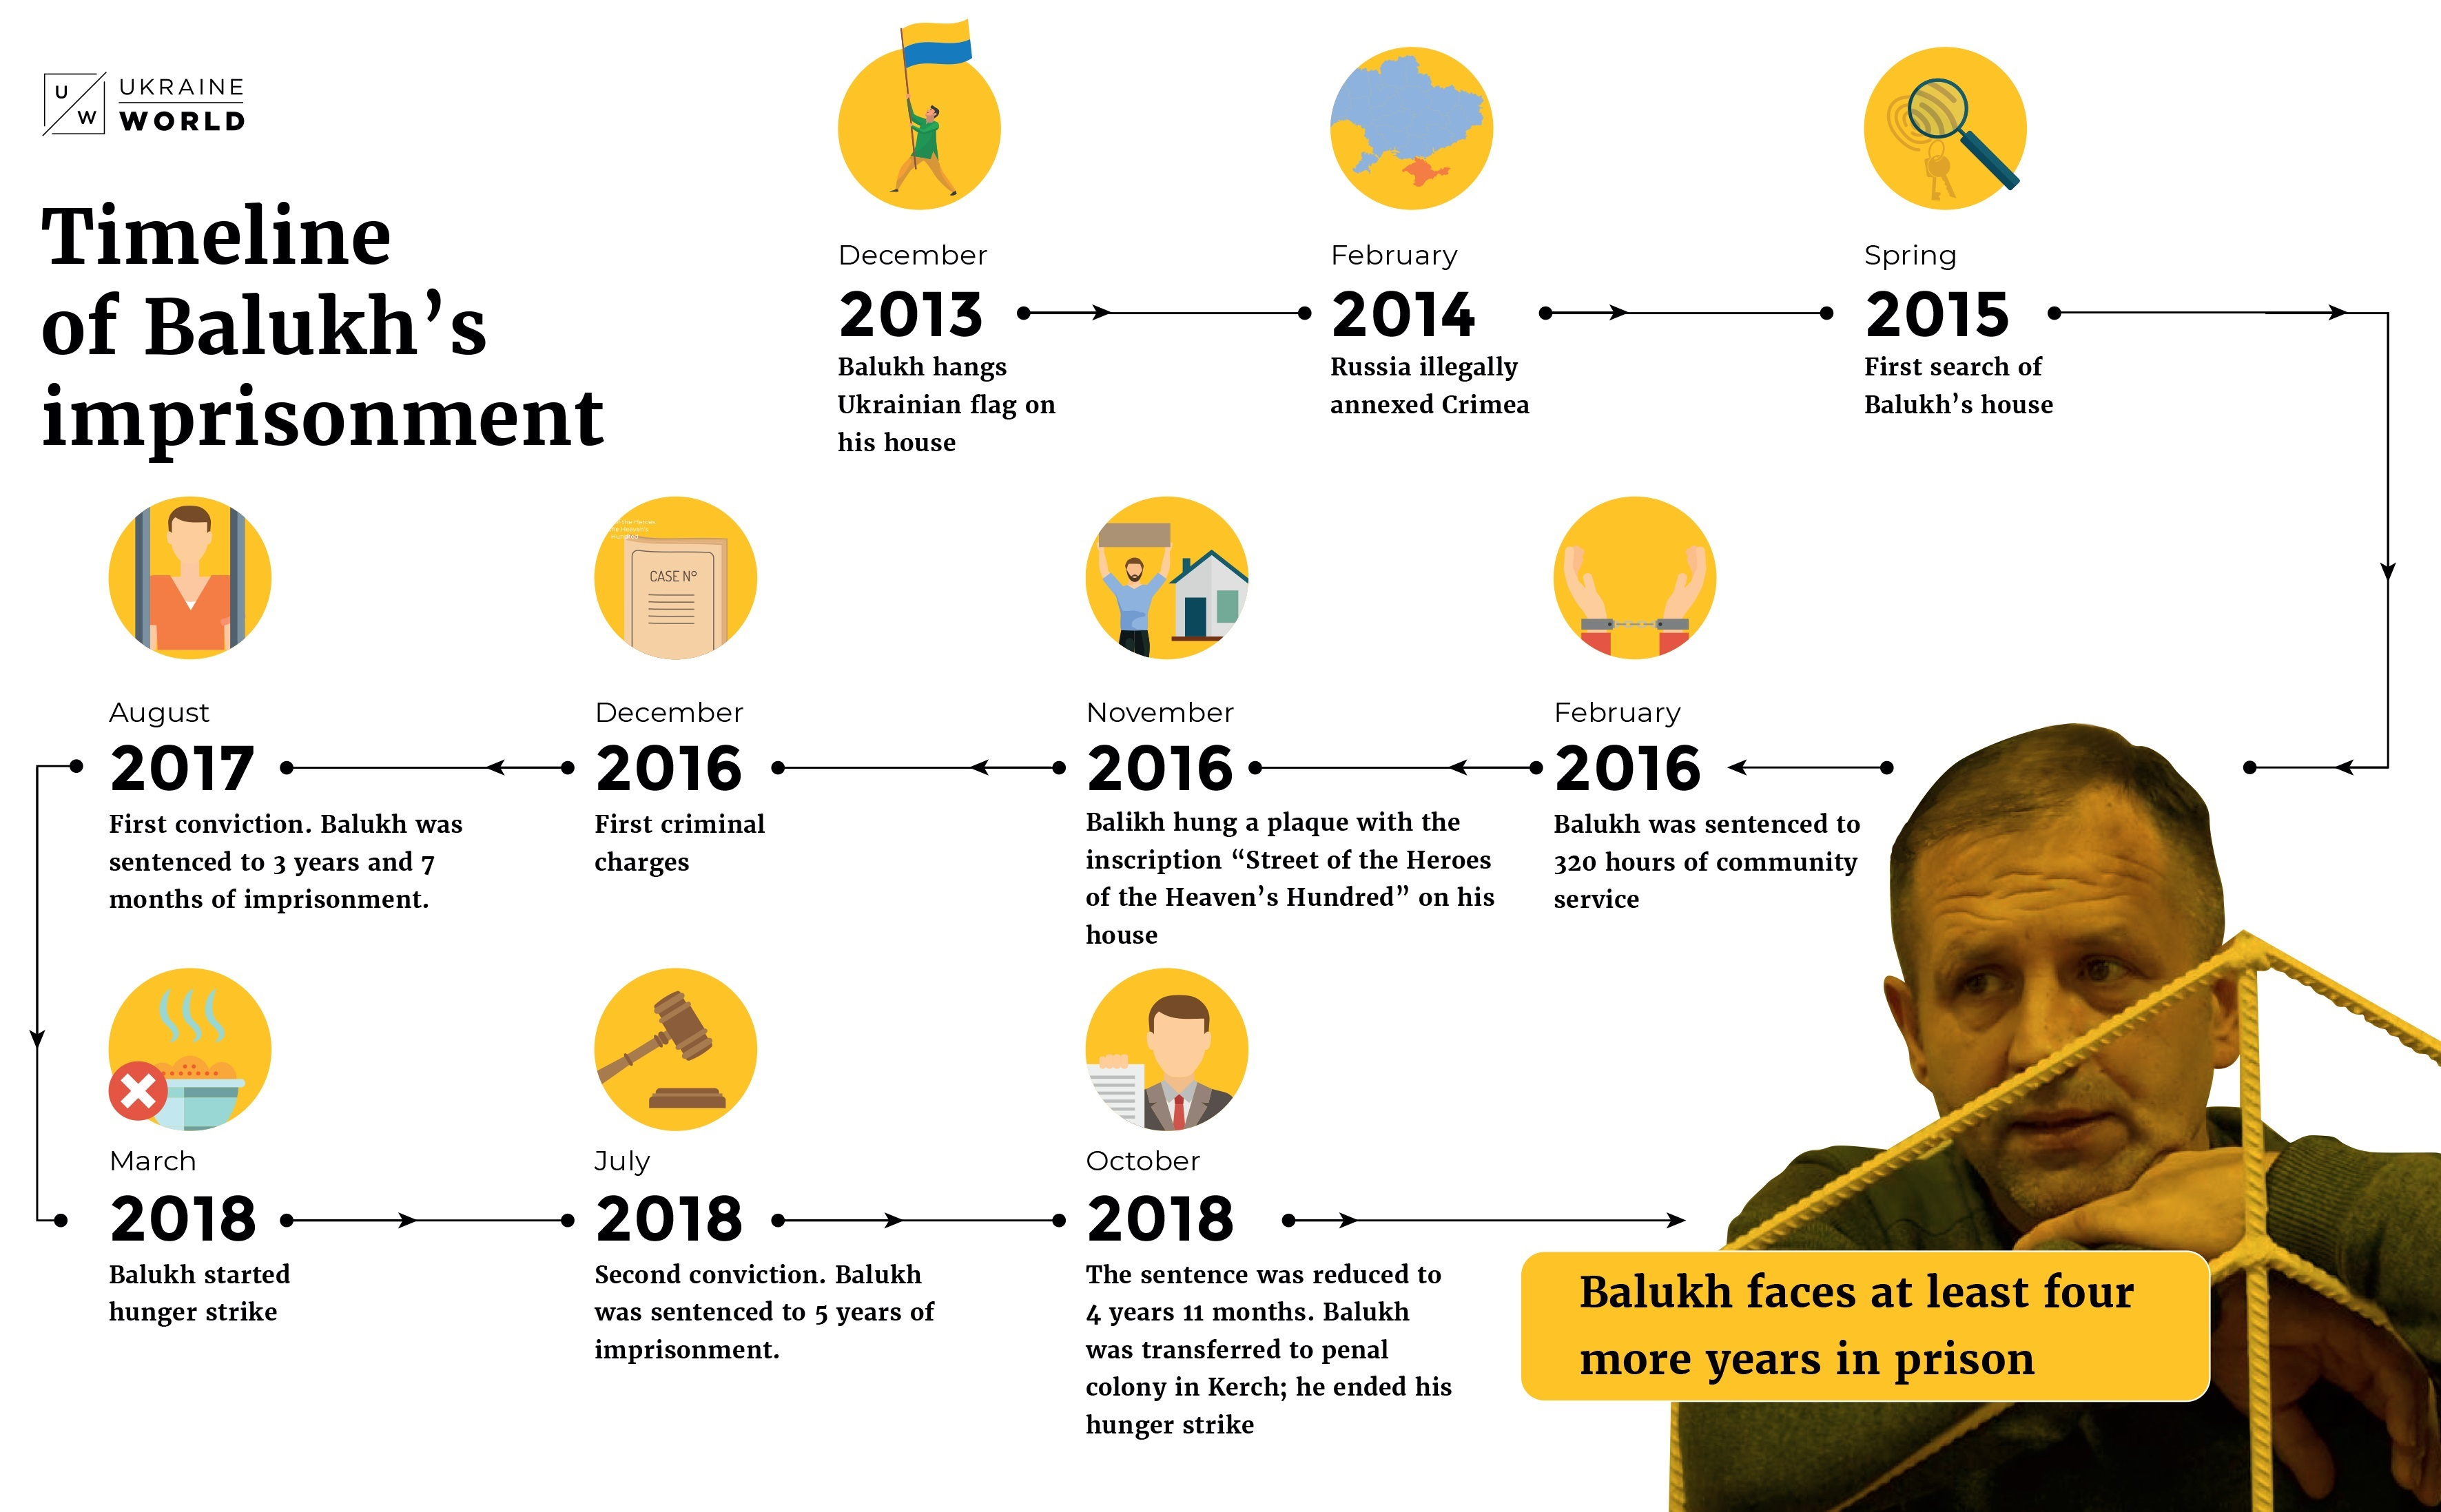 2019 Timeline of Balukhs imprisonment